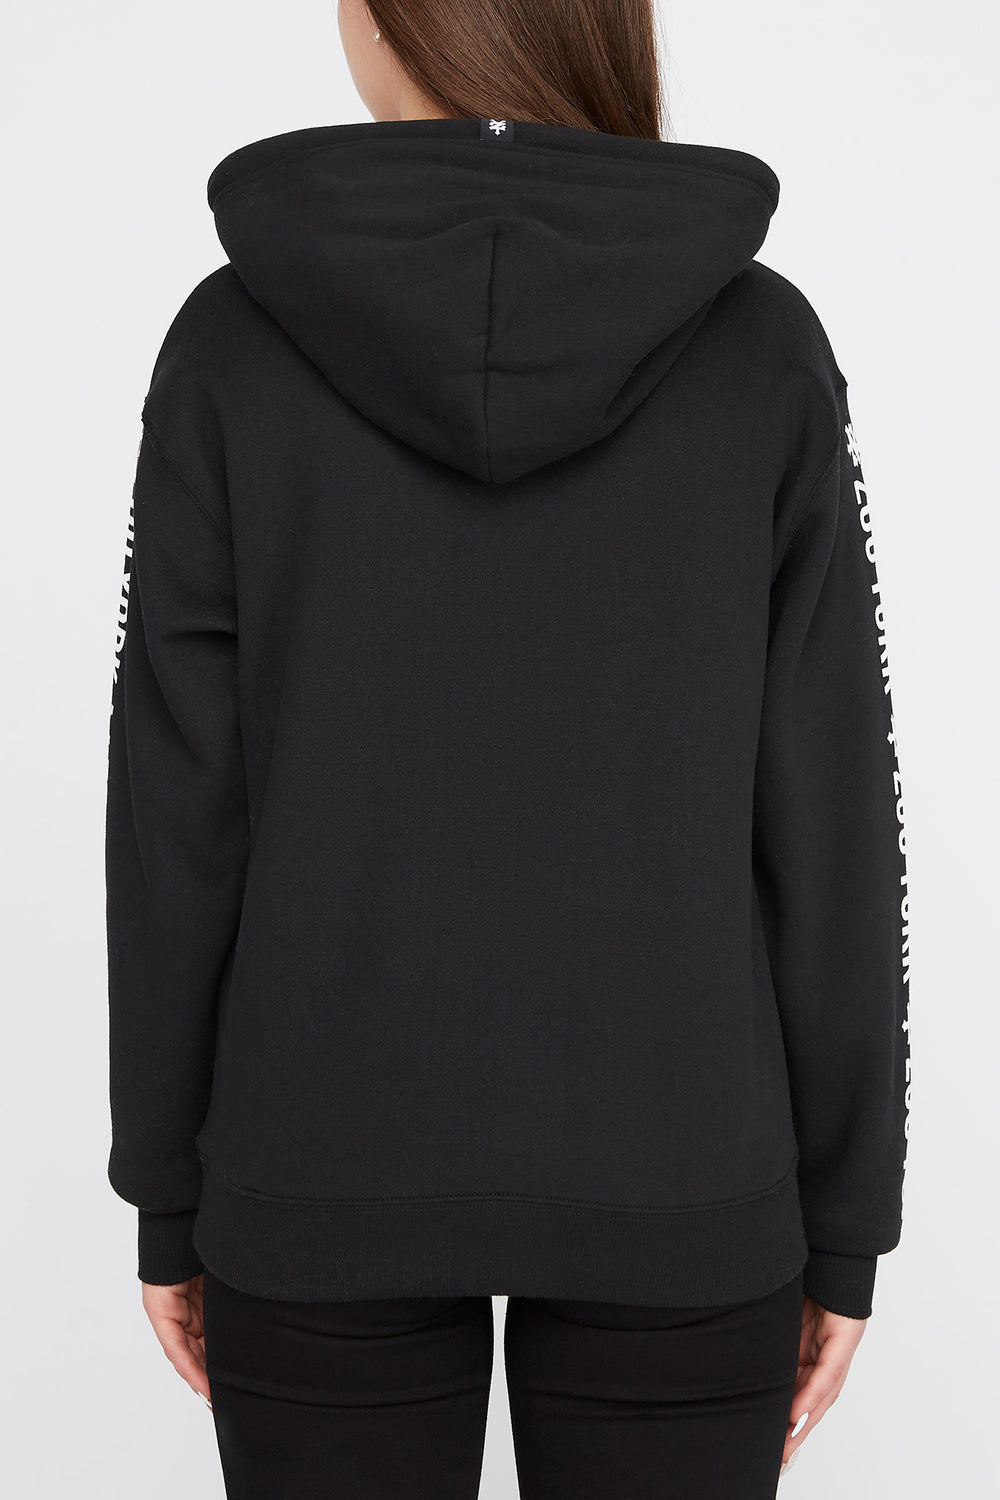 Zoo York Womens Chenille Box Logo Hoodie Black